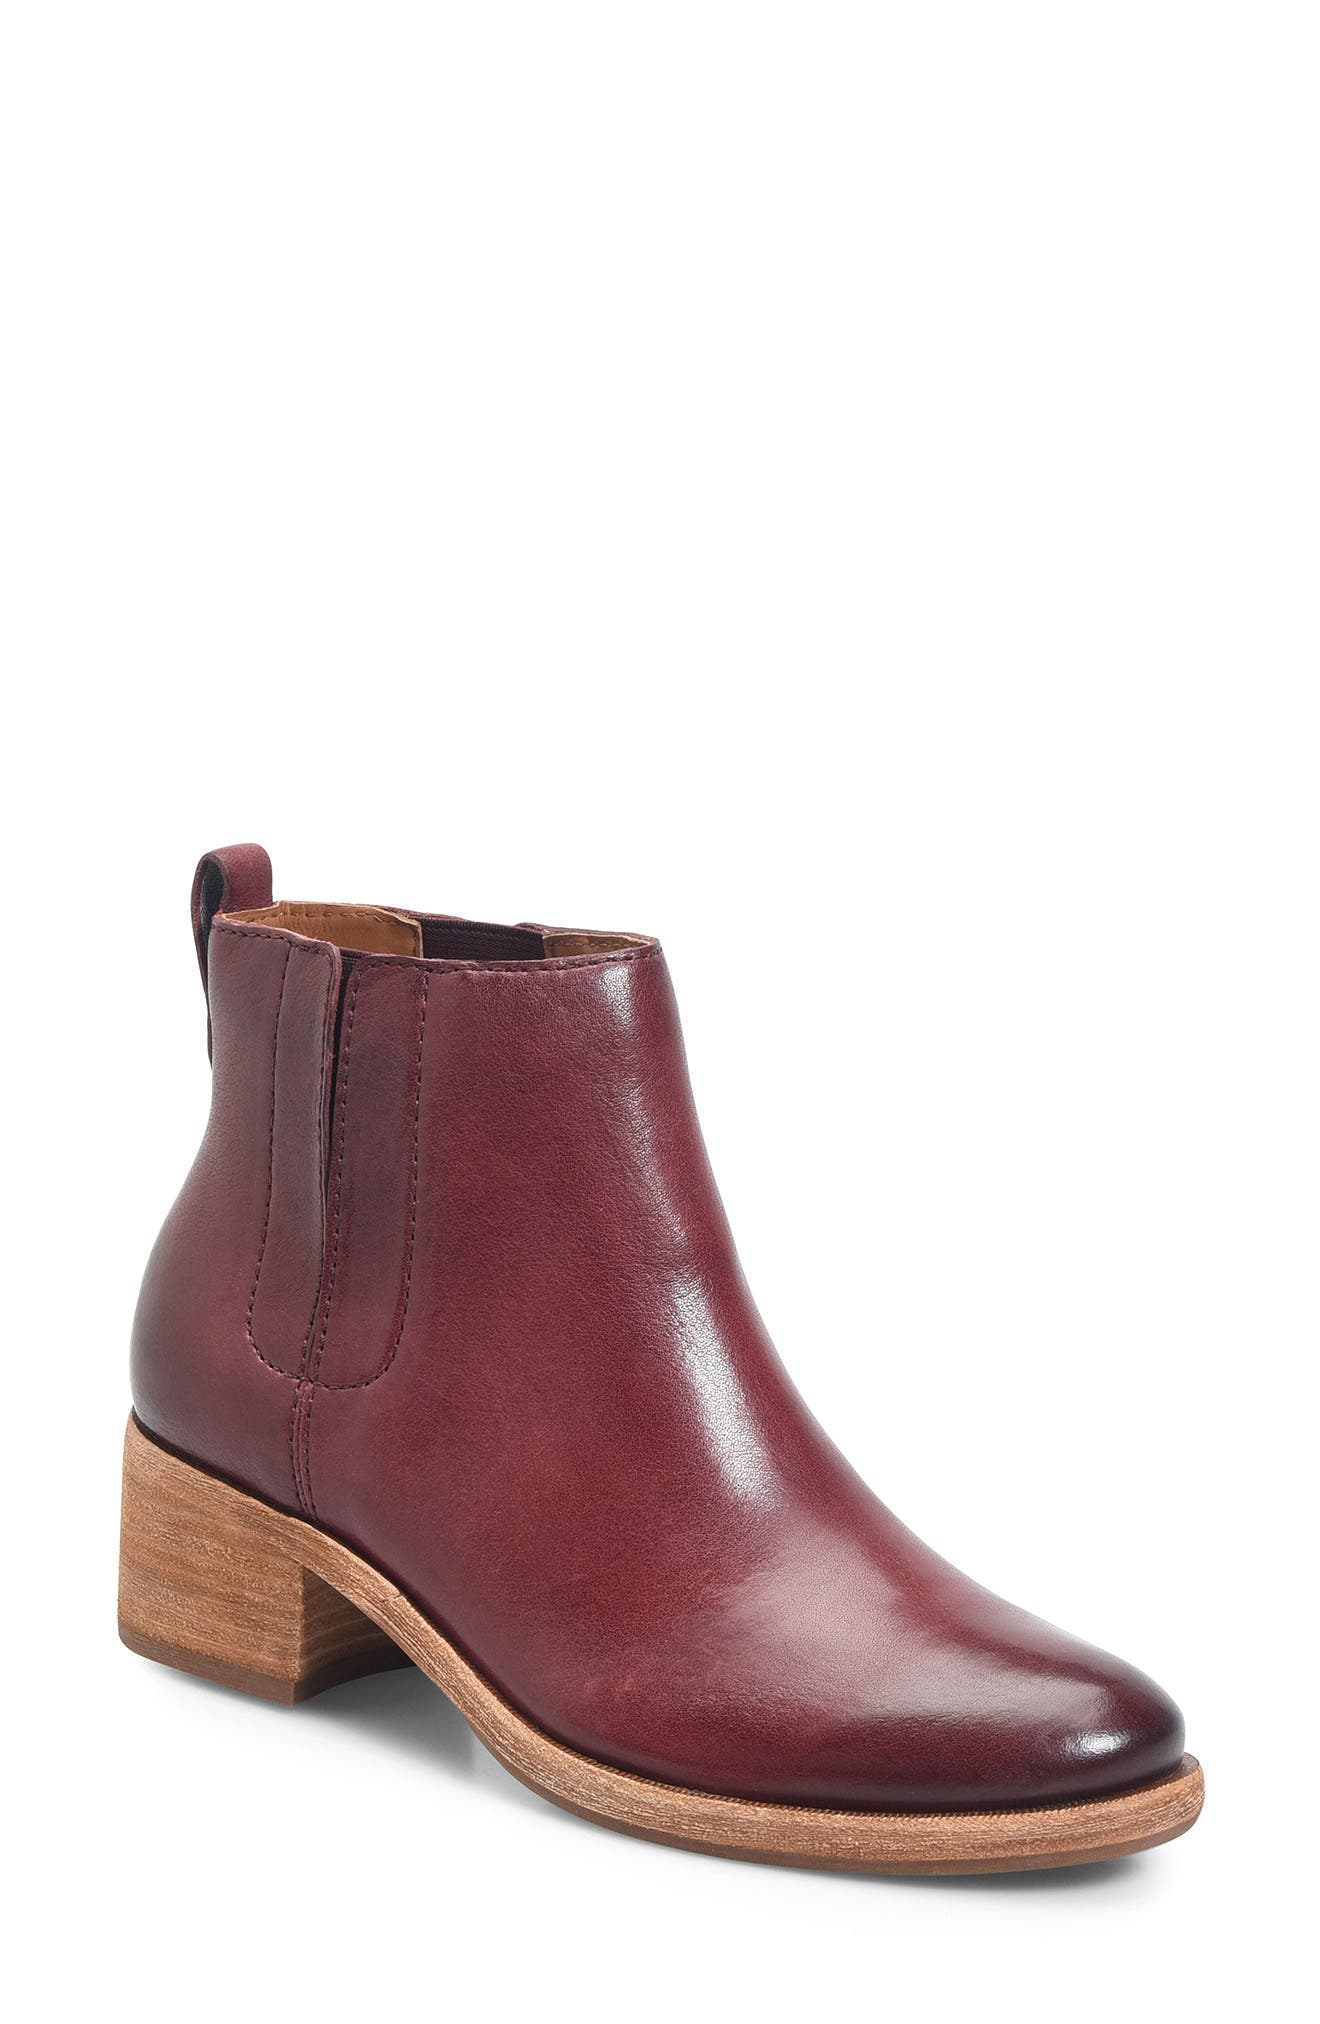 Mindo Chelsea Bootie,                         Main,                         color, Burgundy Leather